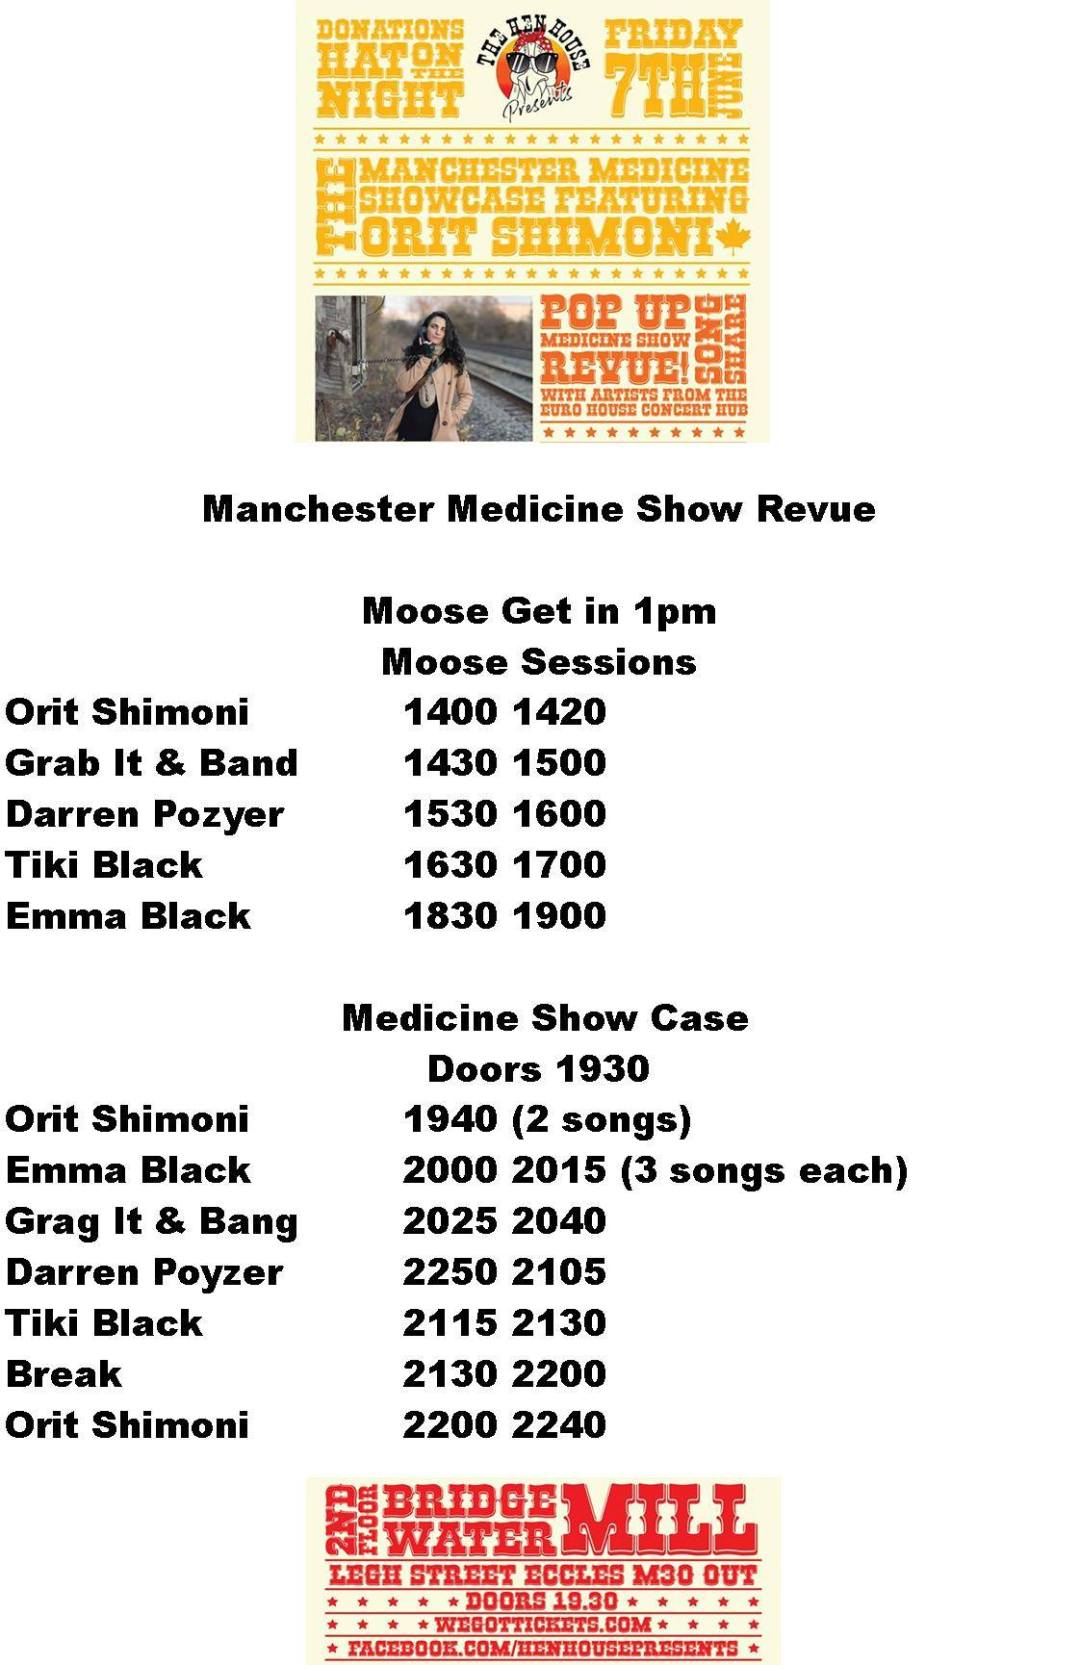 The Manchester Medicine showcase Friday 7th of June 2019 programme